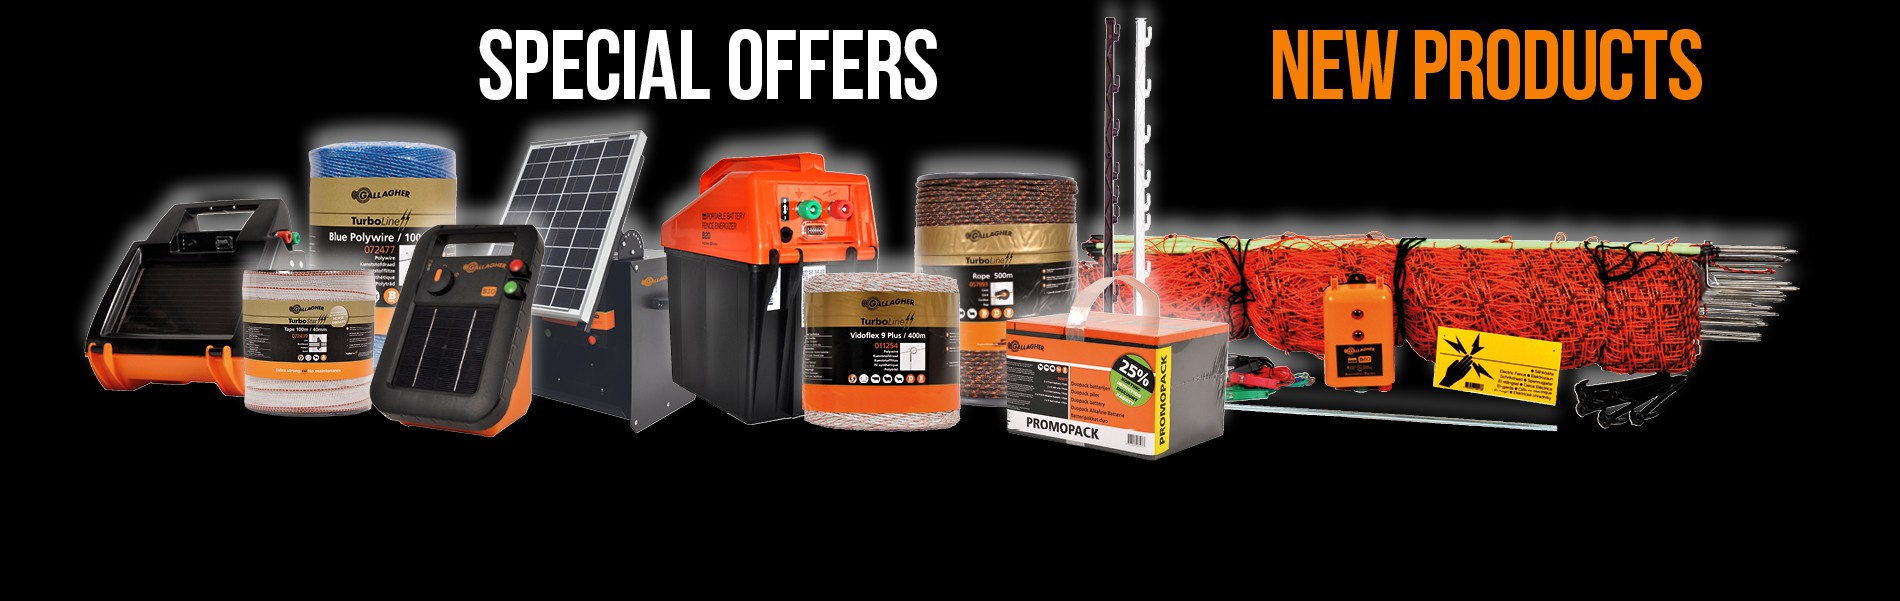 Special offers new products